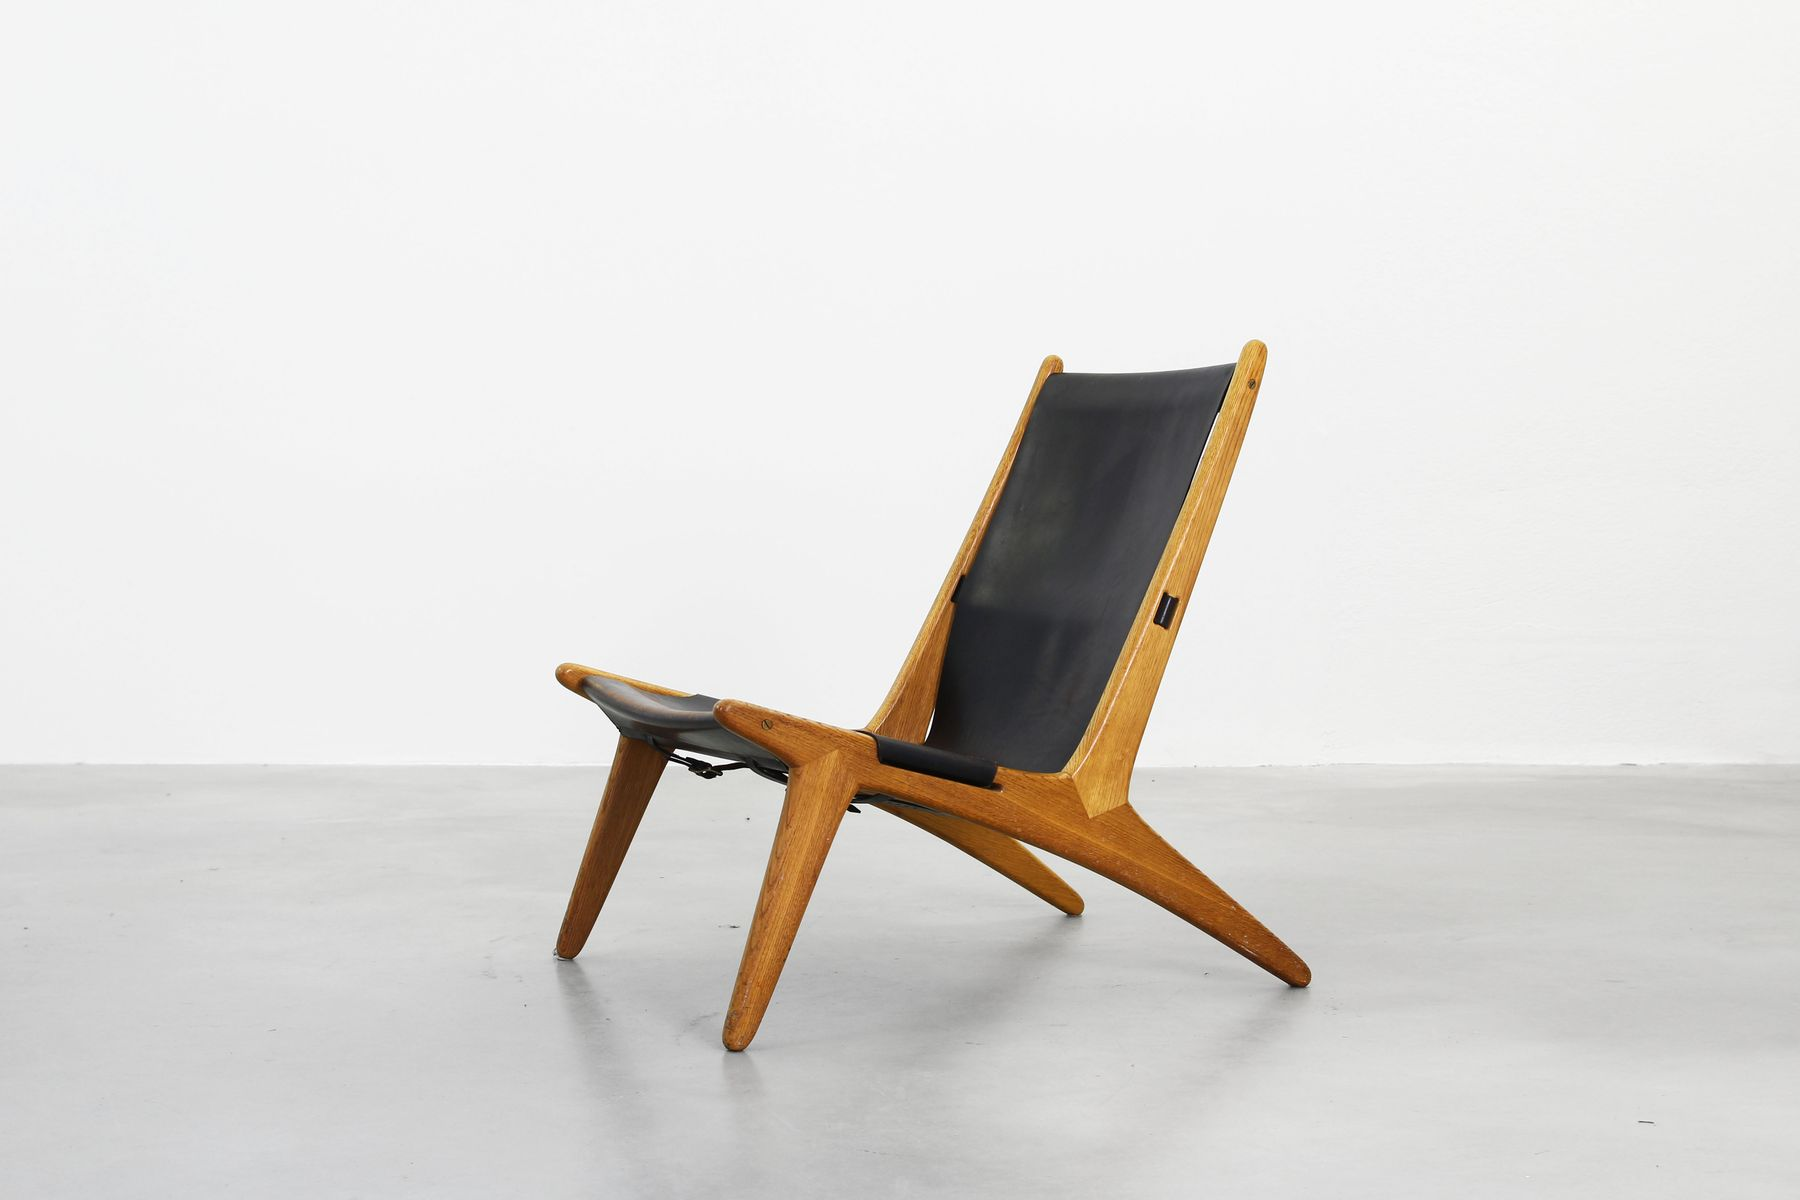 Lounge Hunting Chairs by Uno & –sten Kristiansson for Vittsjömöbel